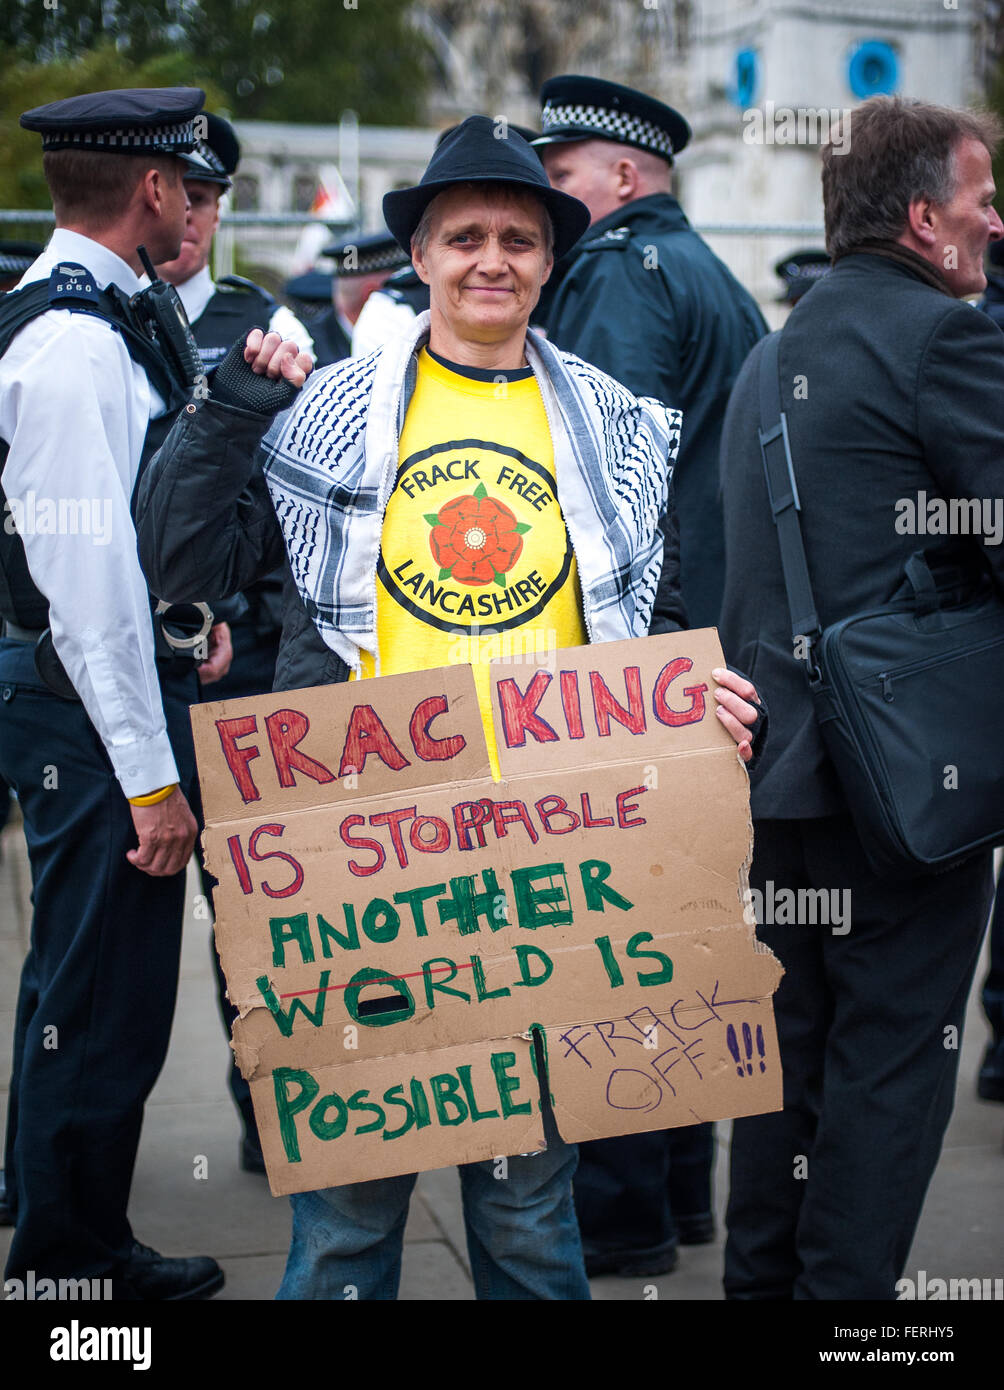 Occupy Parliament Square, anti-fracking protester and placard, London - Stock Image